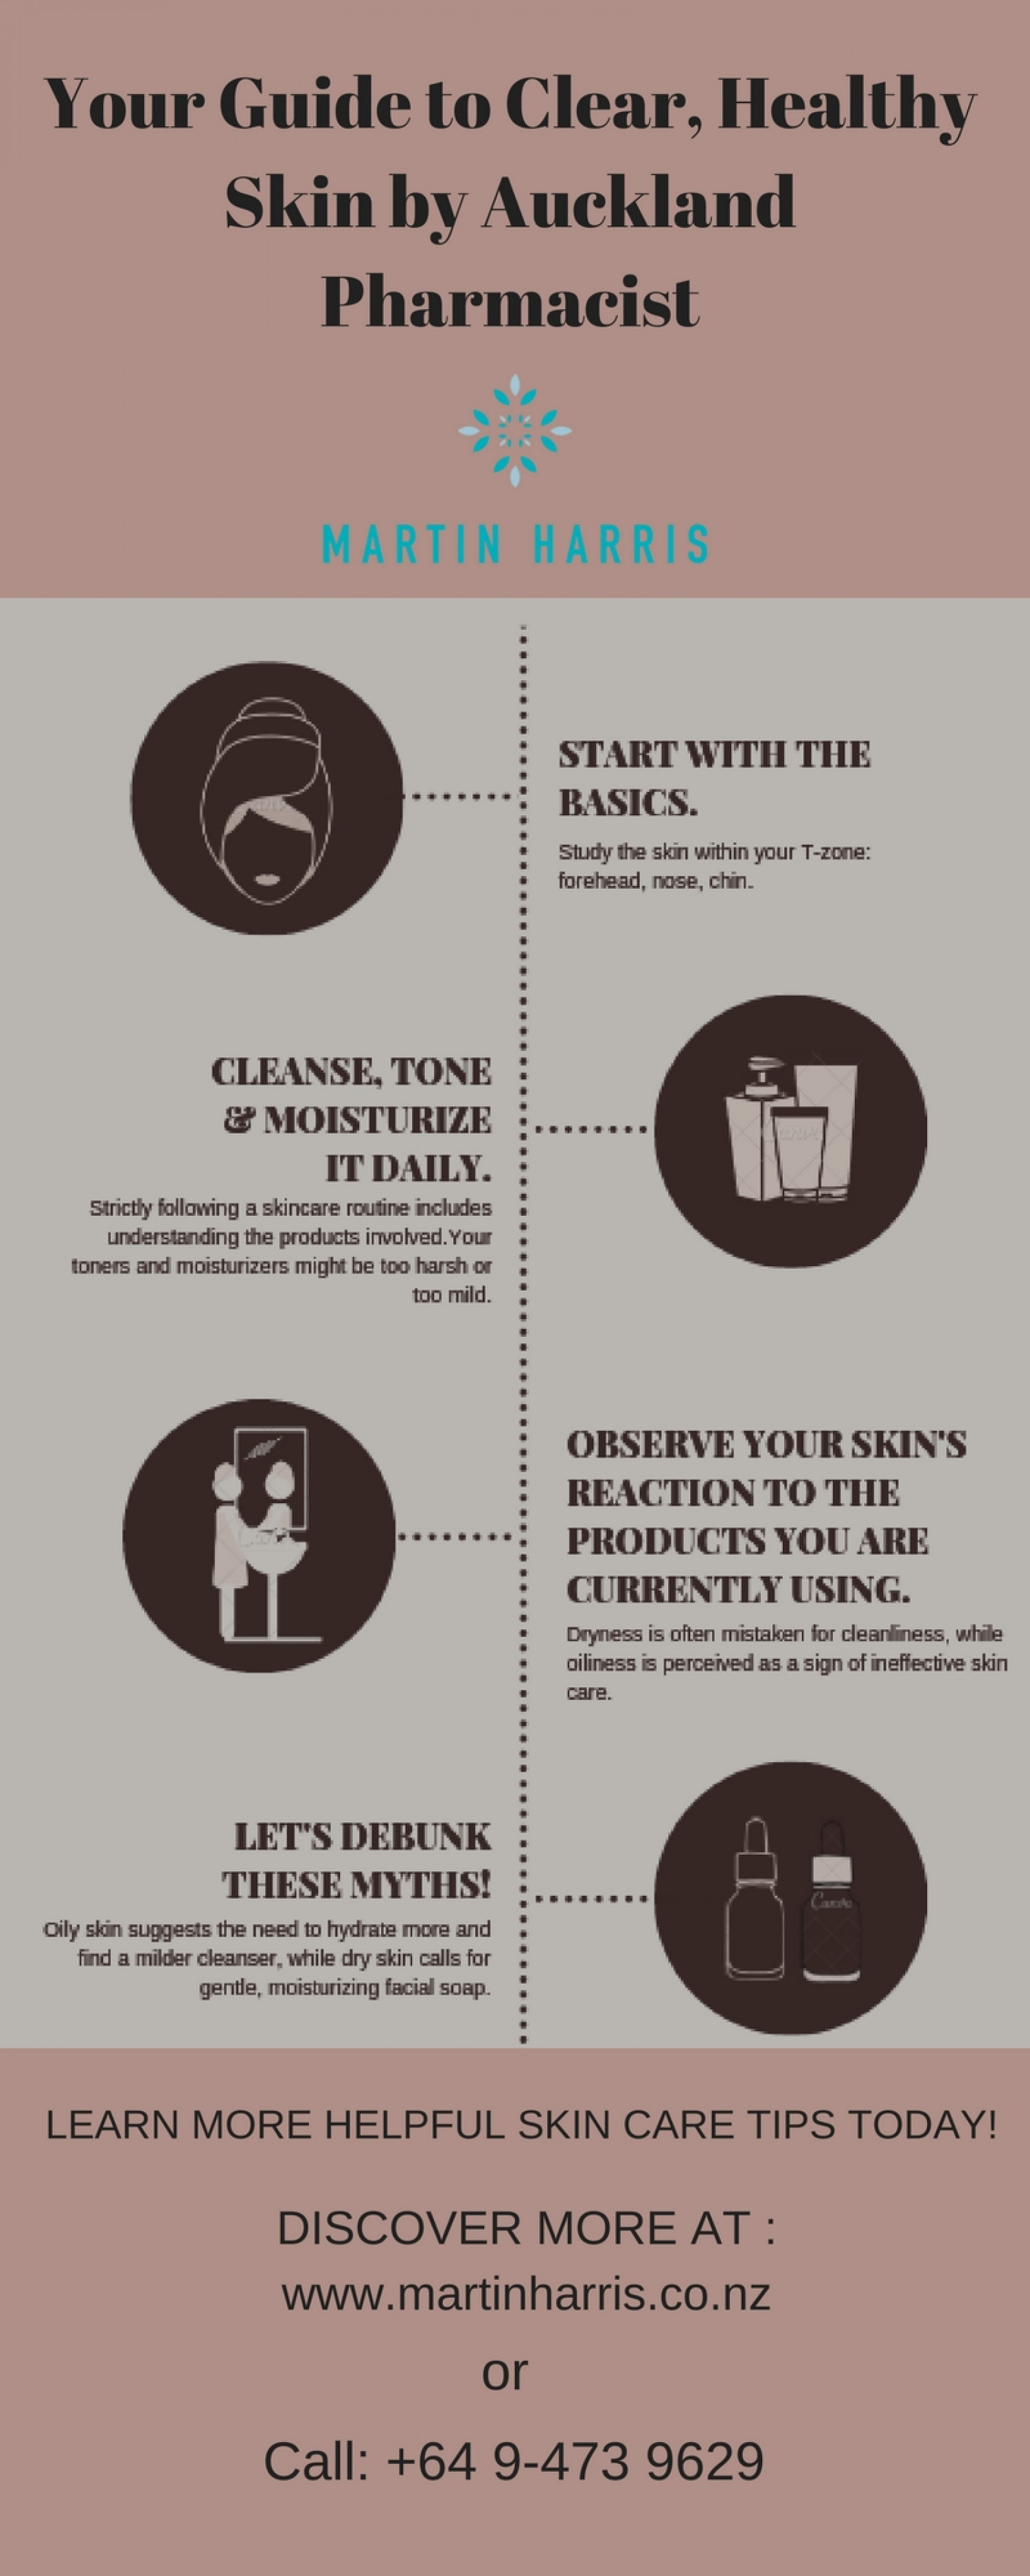 Your Guide to Clear, Healthy Skin by Auckland Pharmacist Infographic